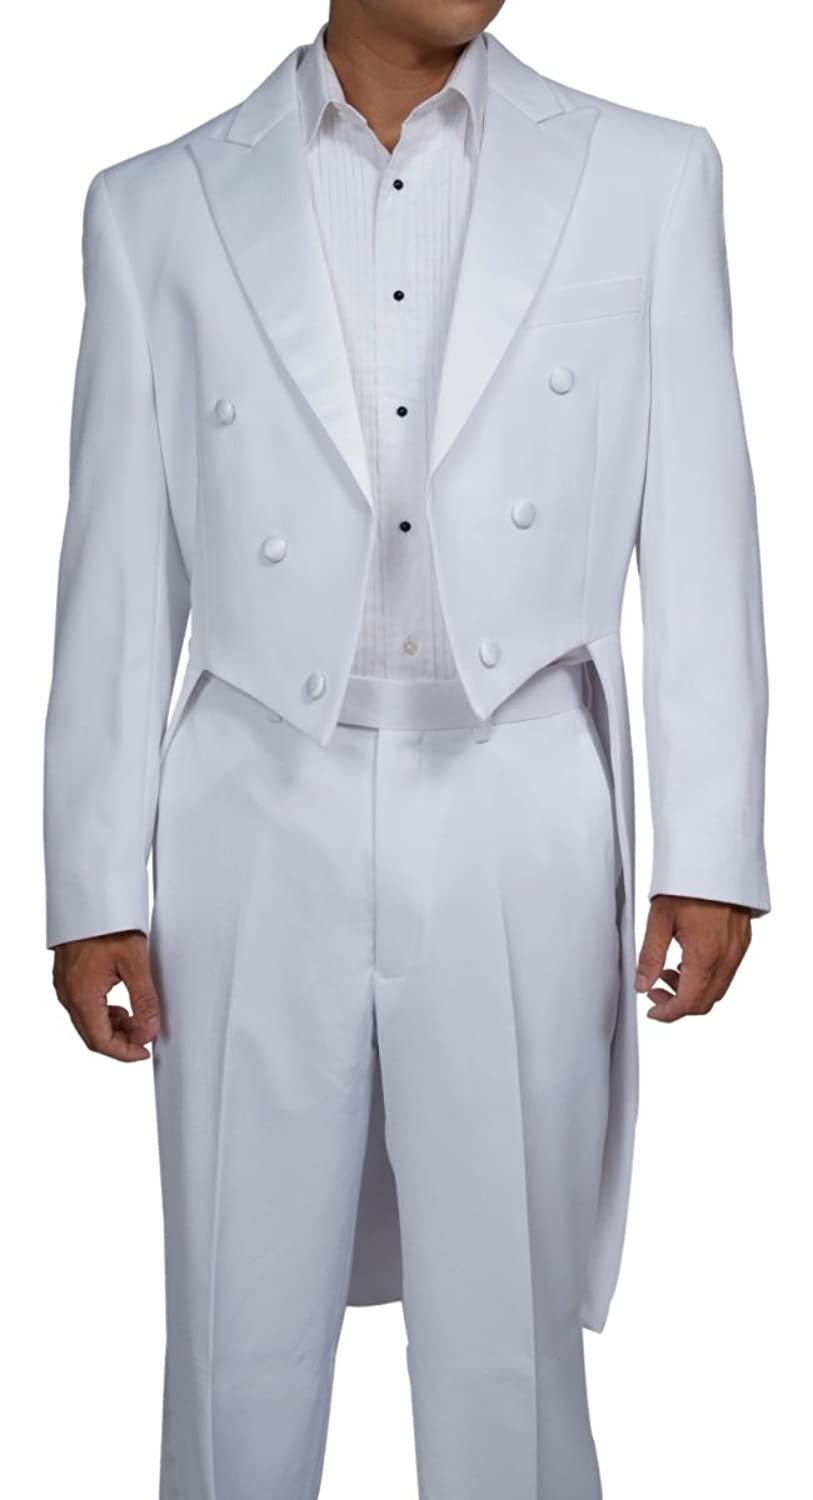 New Era Factory Outlet Men\'s White Tuxedo Tails Includes Tailcoat ...